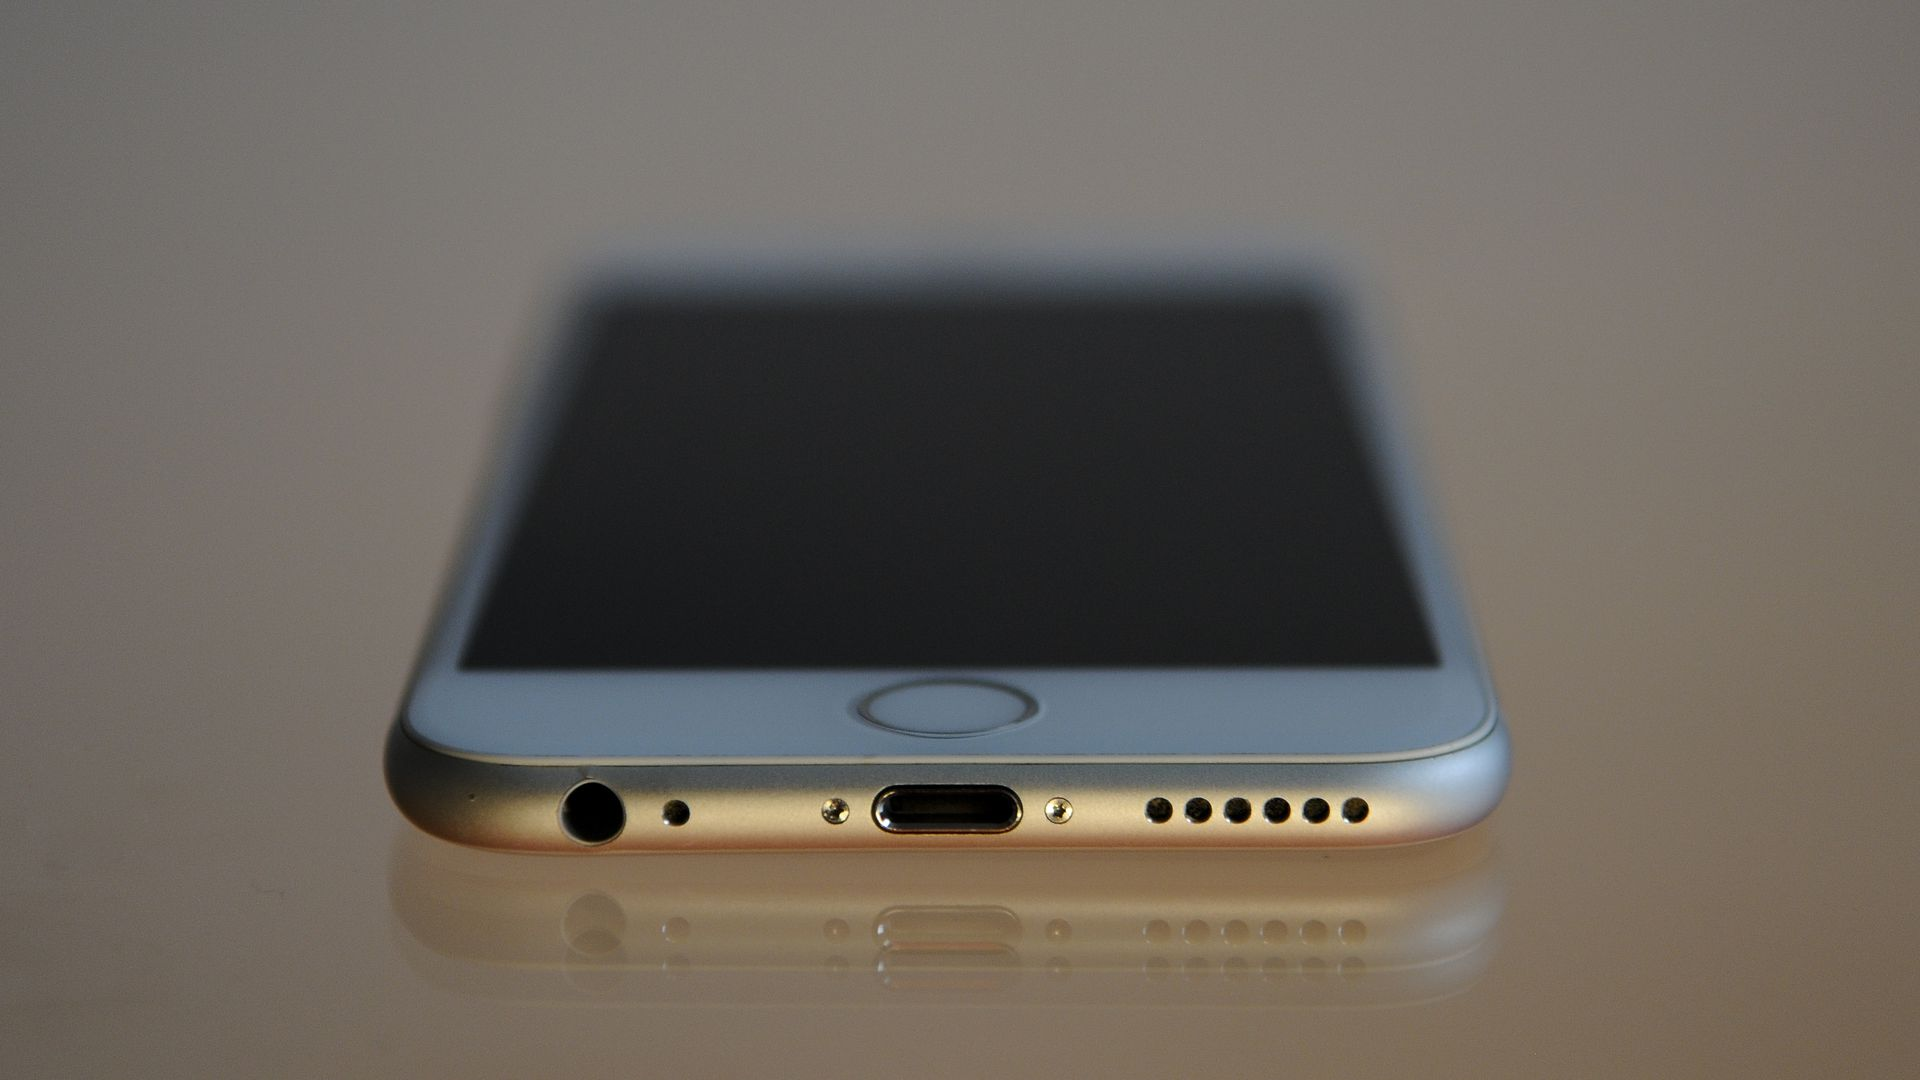 An iPhone 6 viewed with the charging port in foreground